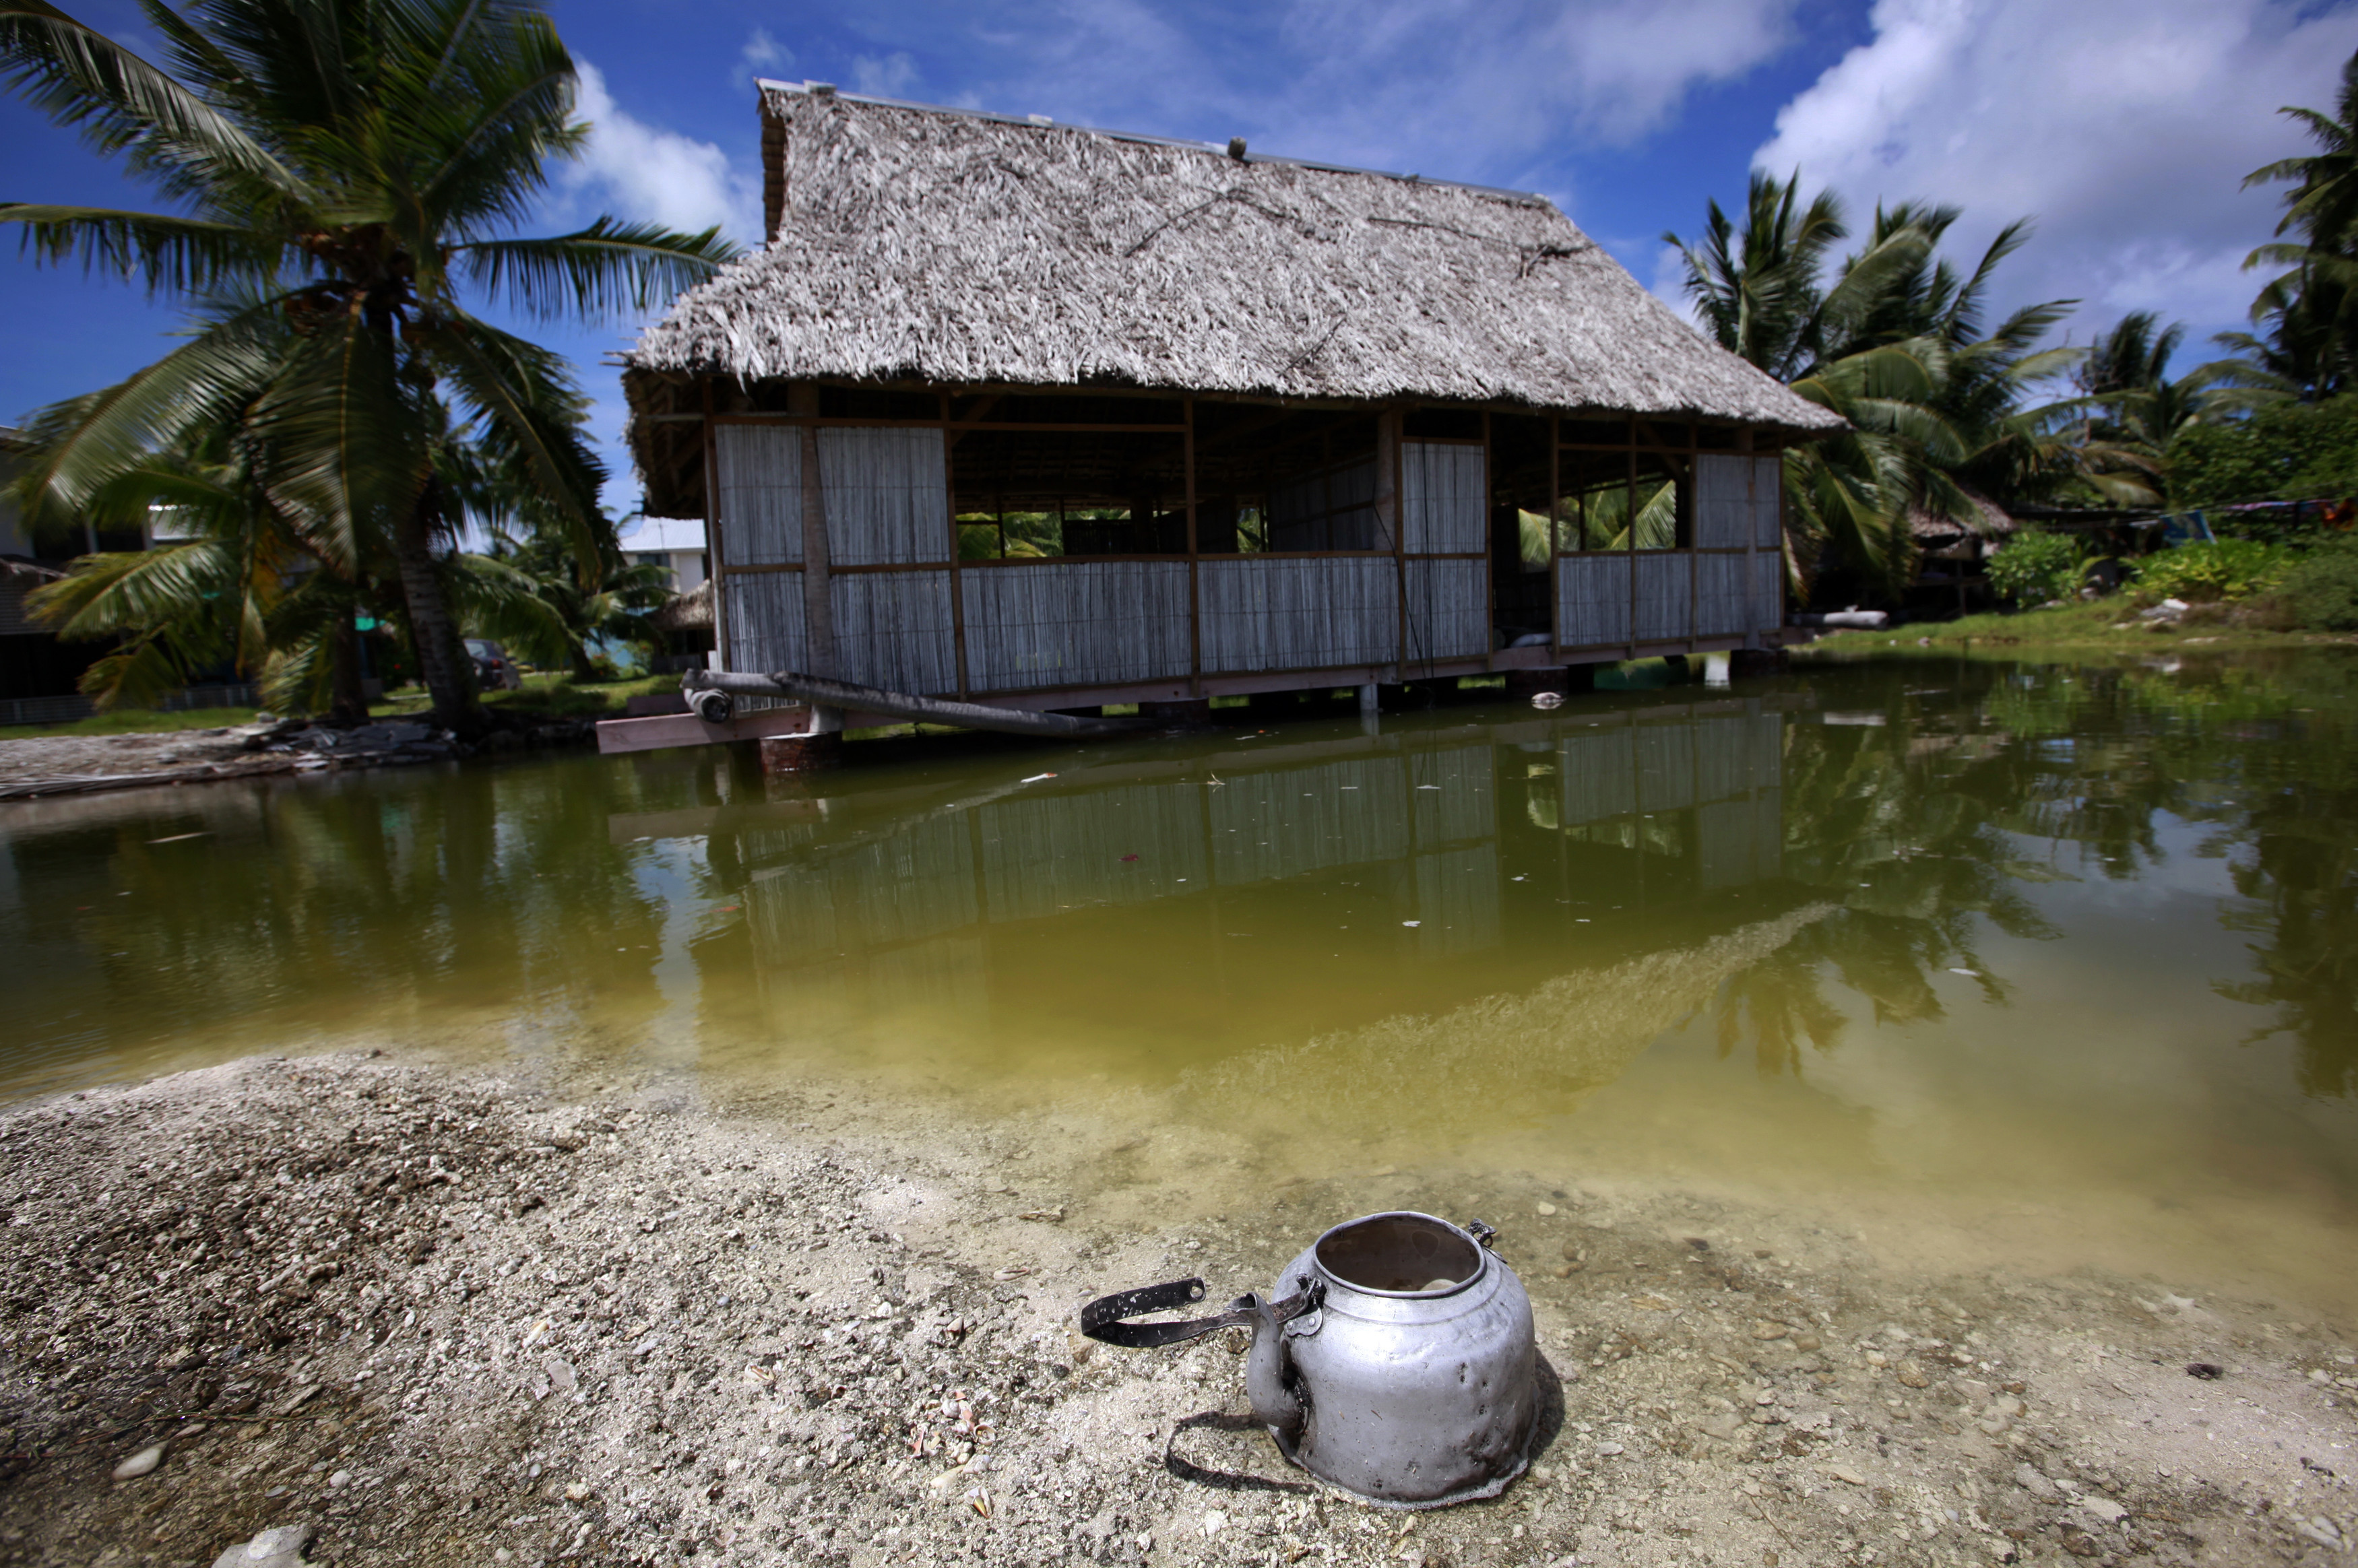 An abandoned house that is affected by seawater during high-tides stands next to a small lagoon near the village of Tangintebu on South Tarawa in the central Pacific island nation of Kiribati May 25, 2013. Kiribati consists of a chain of 33 atolls and islands that stand just metres above sea level, spread over a huge expanse of otherwise empty ocean. With surrounding sea levels rising, Kiribati President Anote Tong has predicted his country will likely become uninhabitable in 30-60 years because of inundation and contamination of its freshwater supplies. Picture taken May 25, 2013. REUTERS/David Gray (KIRIBATI - Tags: ENVIRONMENT POLITICS SOCIETY)ATTENTION EDITORS: PICTURE 09 OF 42 FOR PACKAGE 'KIRIBATI - GONE IN 60 YEARS'. SEARCH 'KIRIBATI' FOR ALL IMAGES - RTX10LQV